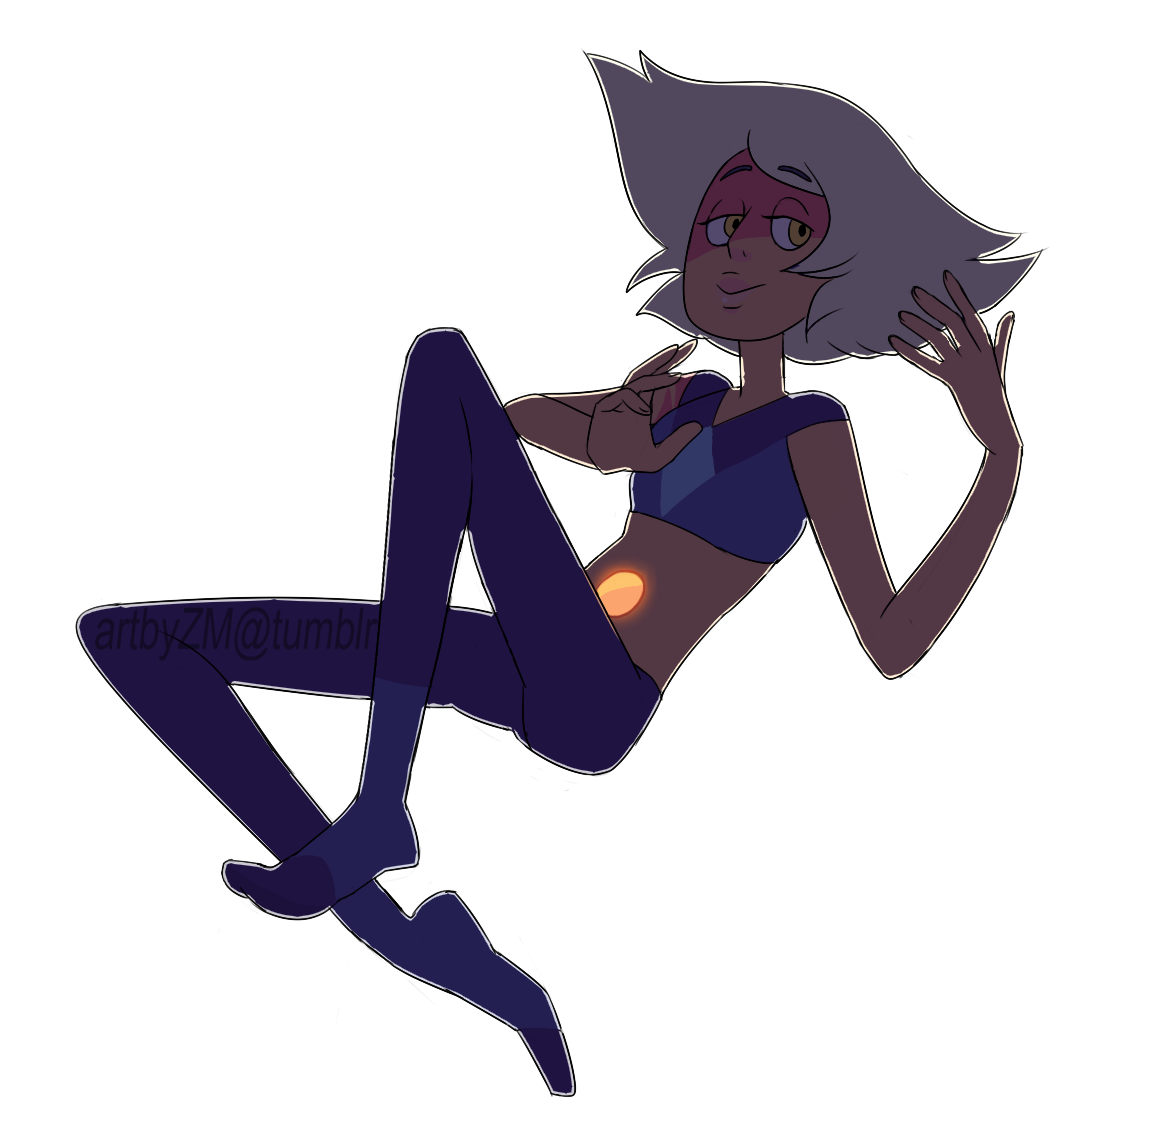 I wanted to quickly doodle Skinny but accidentally made some neat lighting.